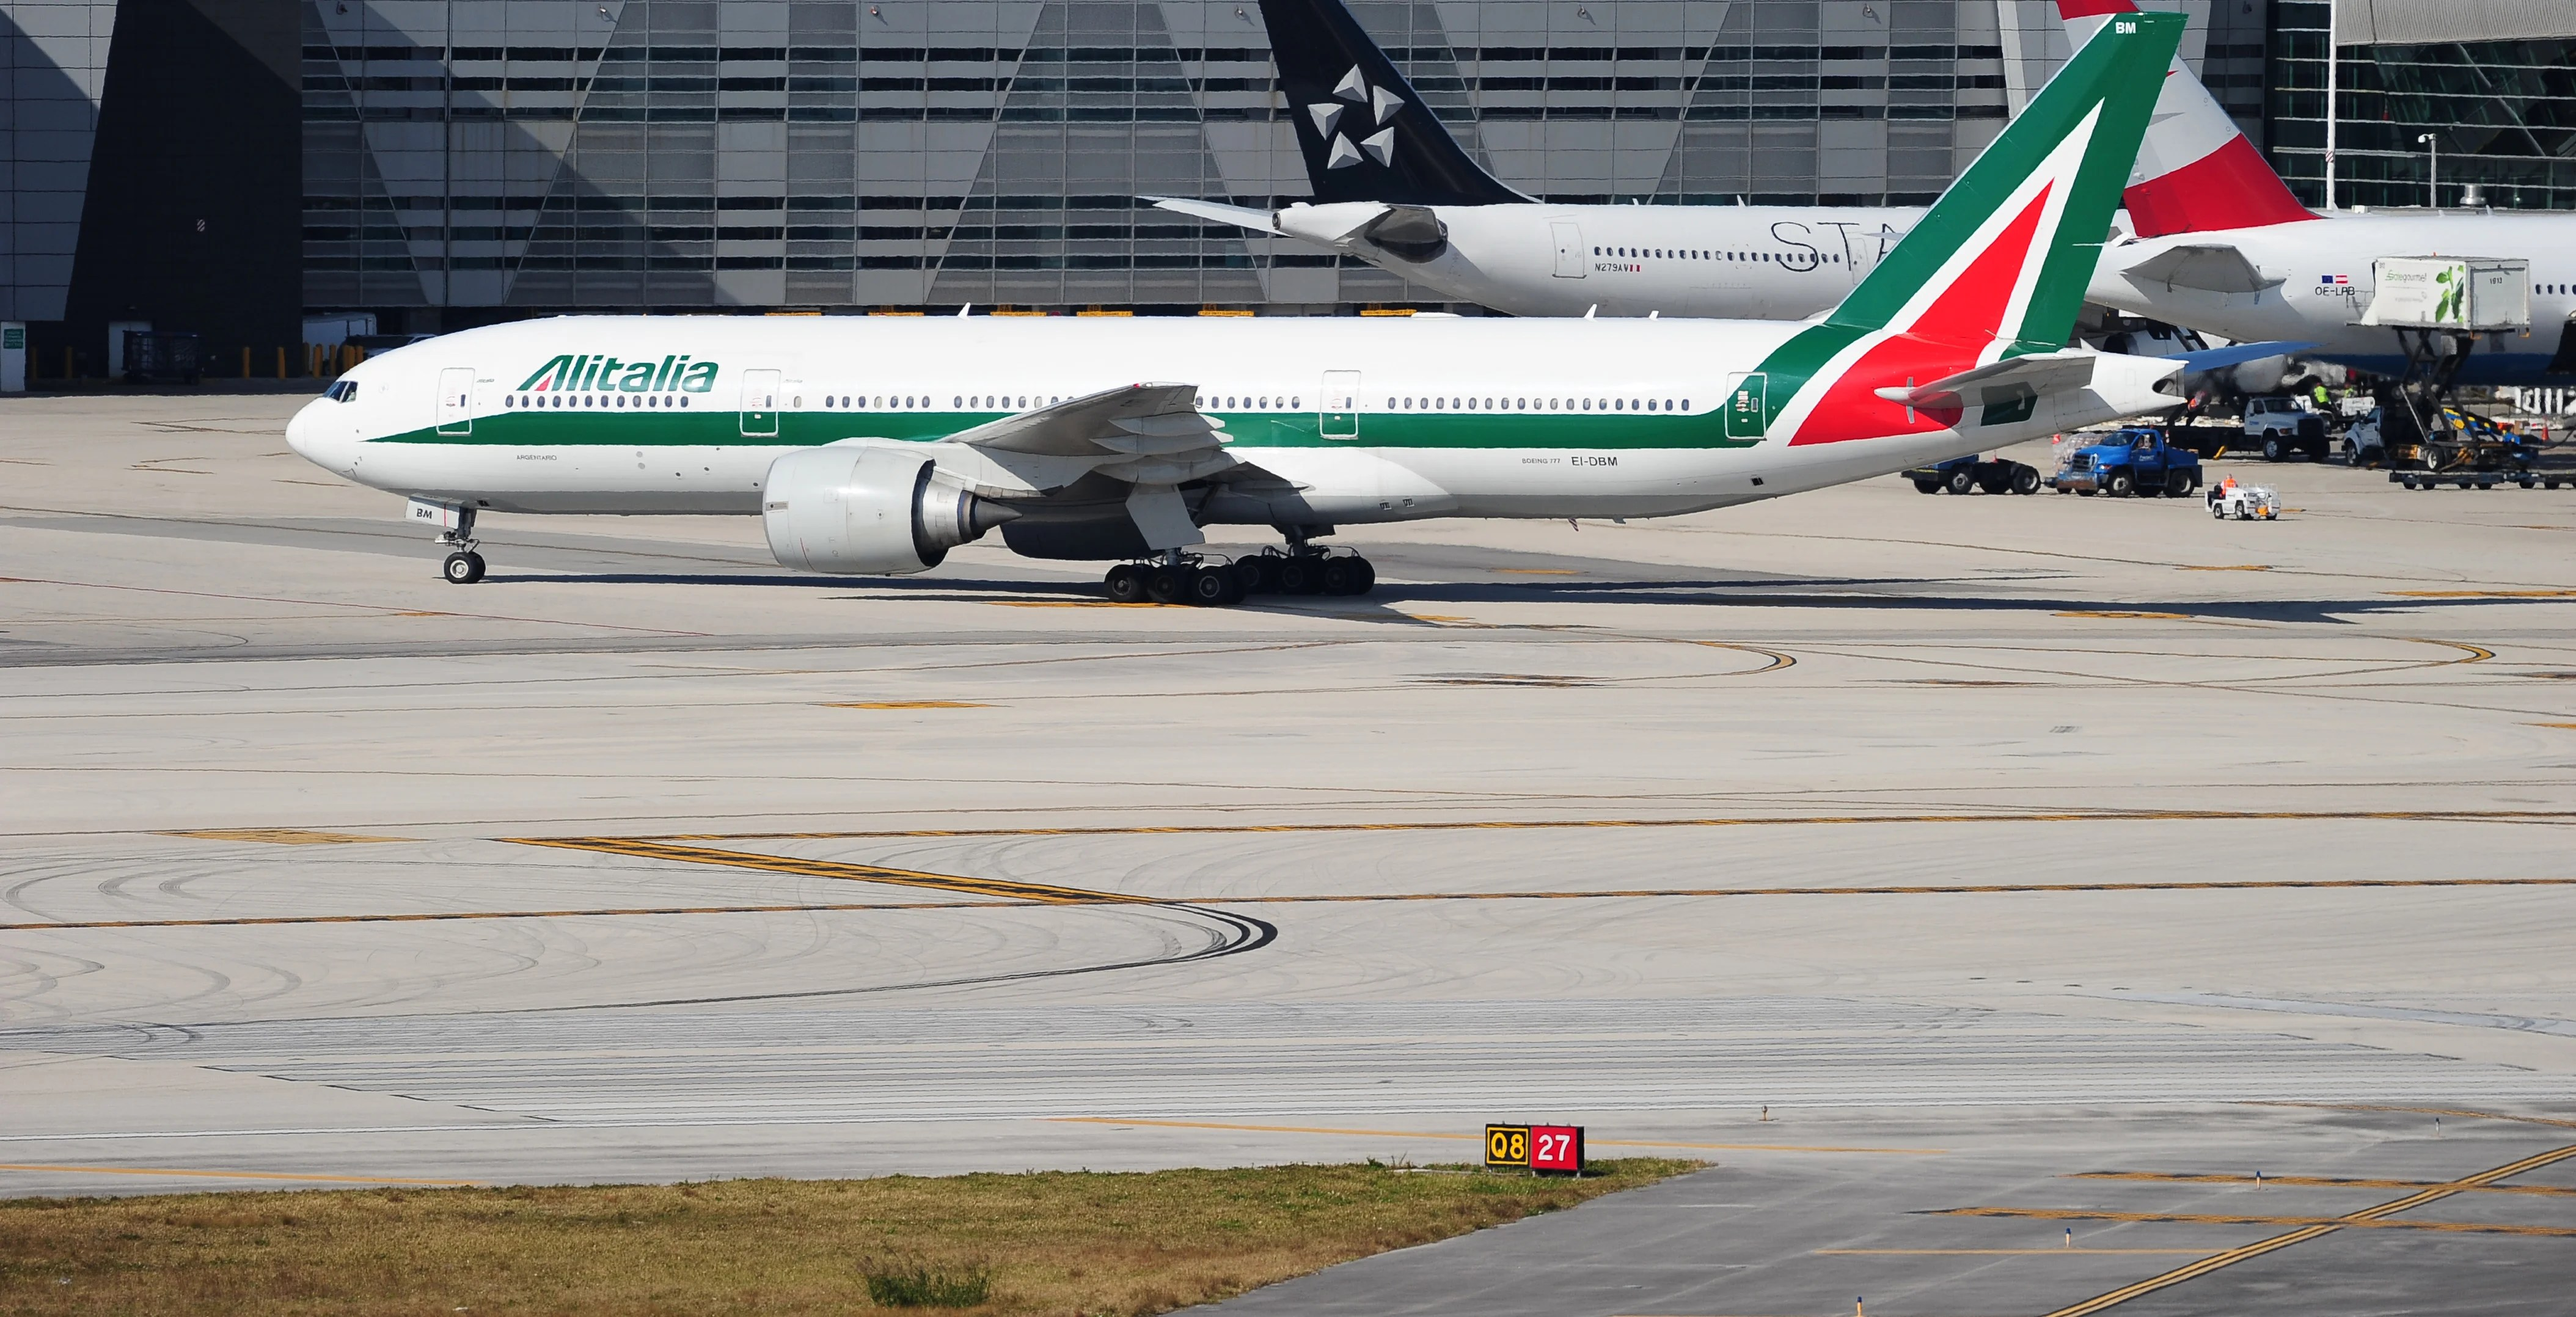 Delta Made an Offer to Buy Bankrupt Alitalia